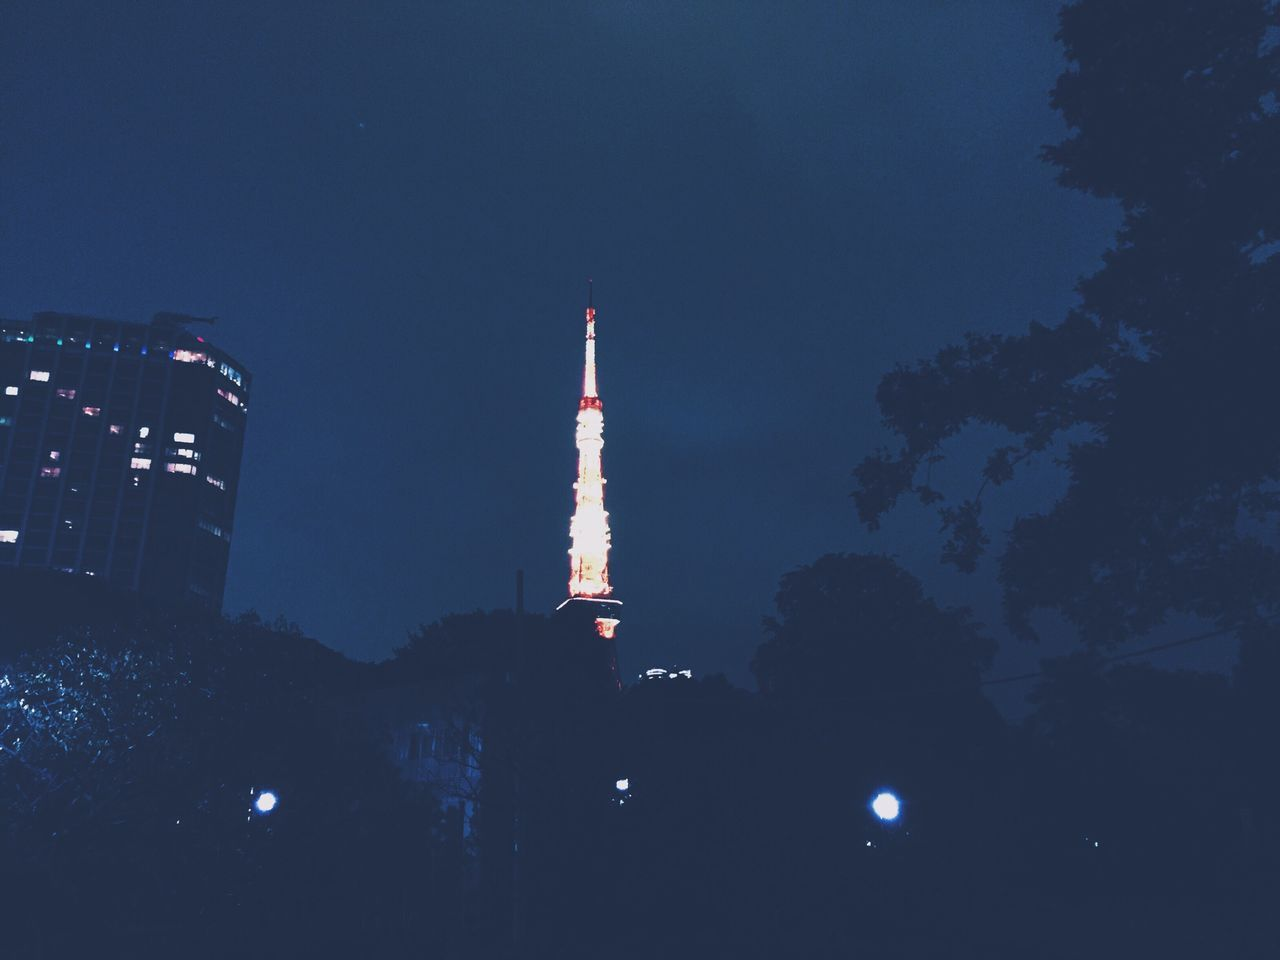 architecture, tower, built structure, night, tree, low angle view, illuminated, building exterior, communication, outdoors, sky, no people, travel destinations, city